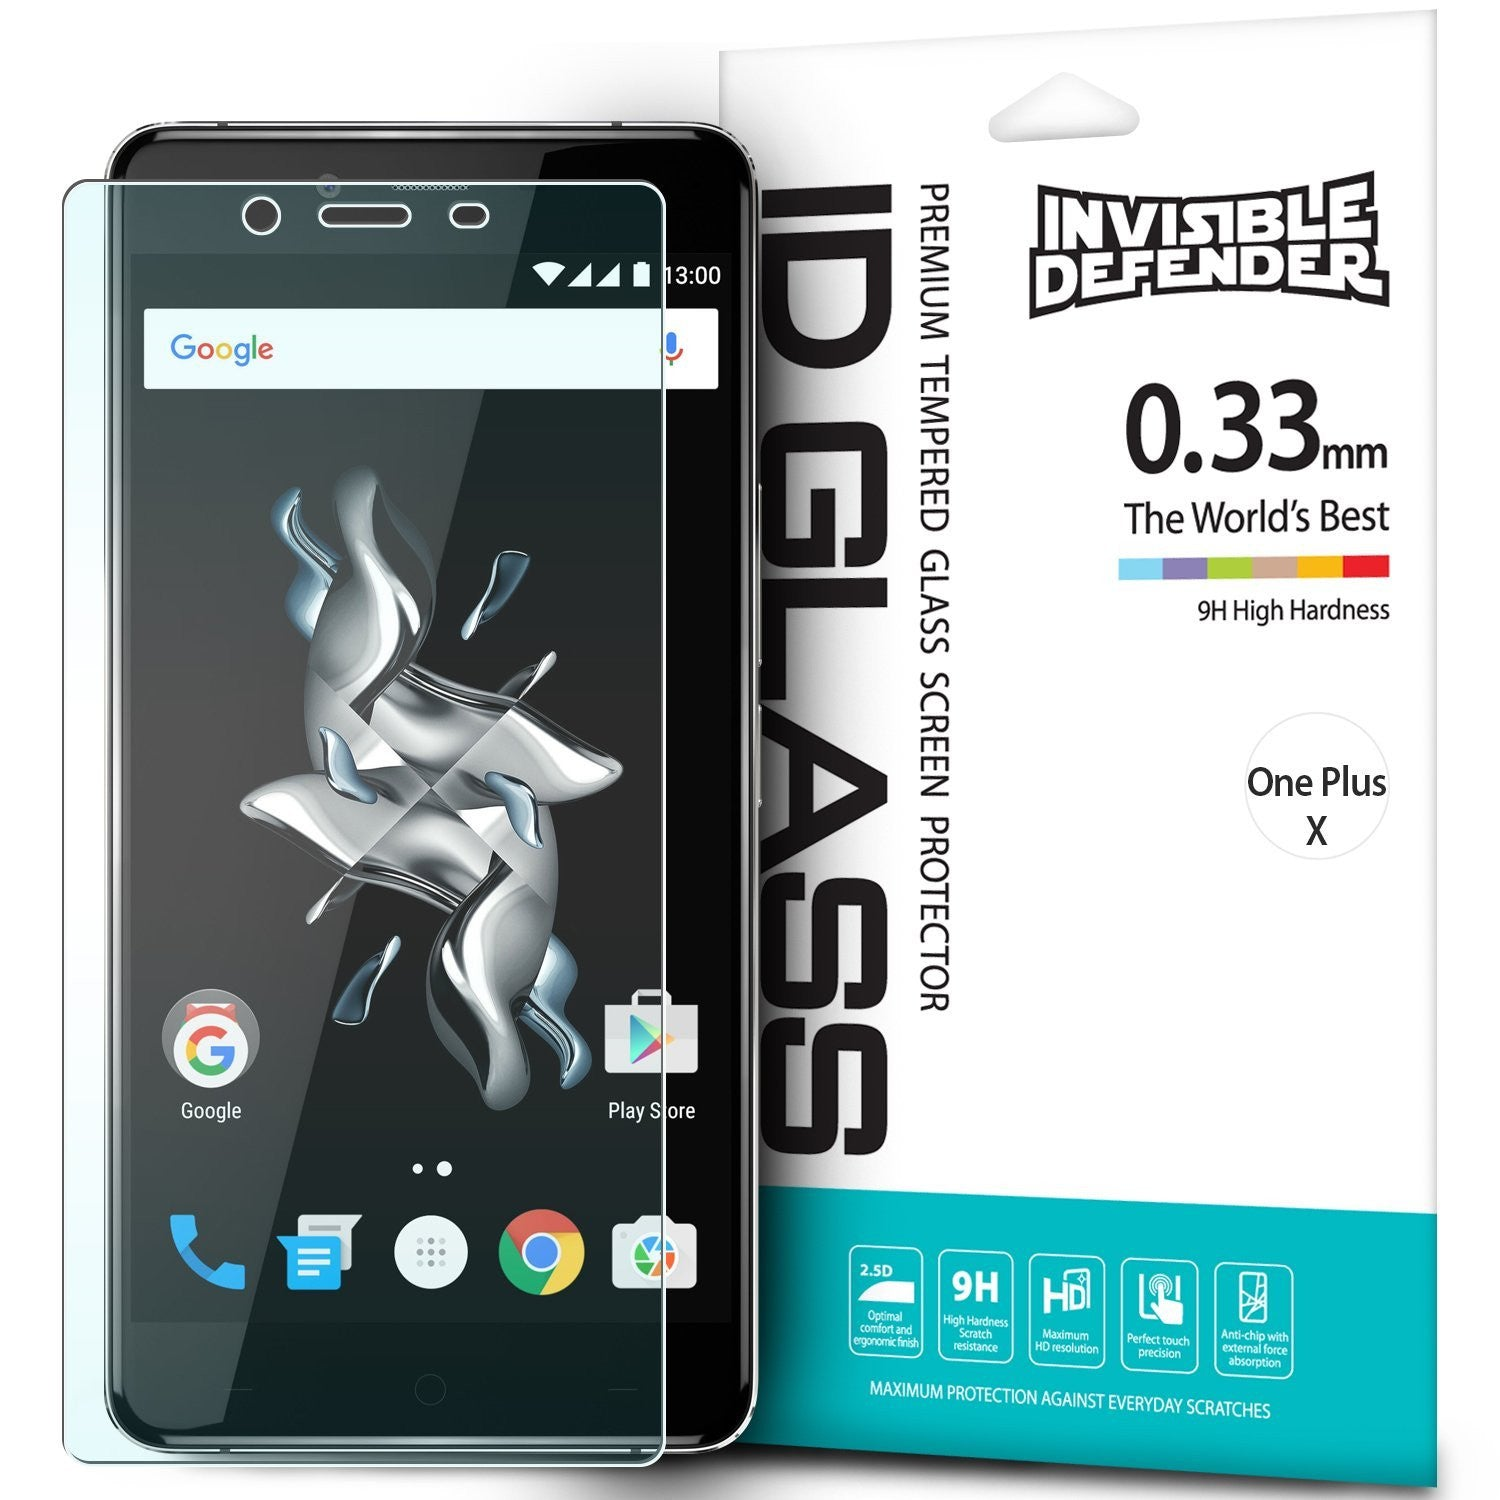 oneplus x invisible defender tempered glass screen protector